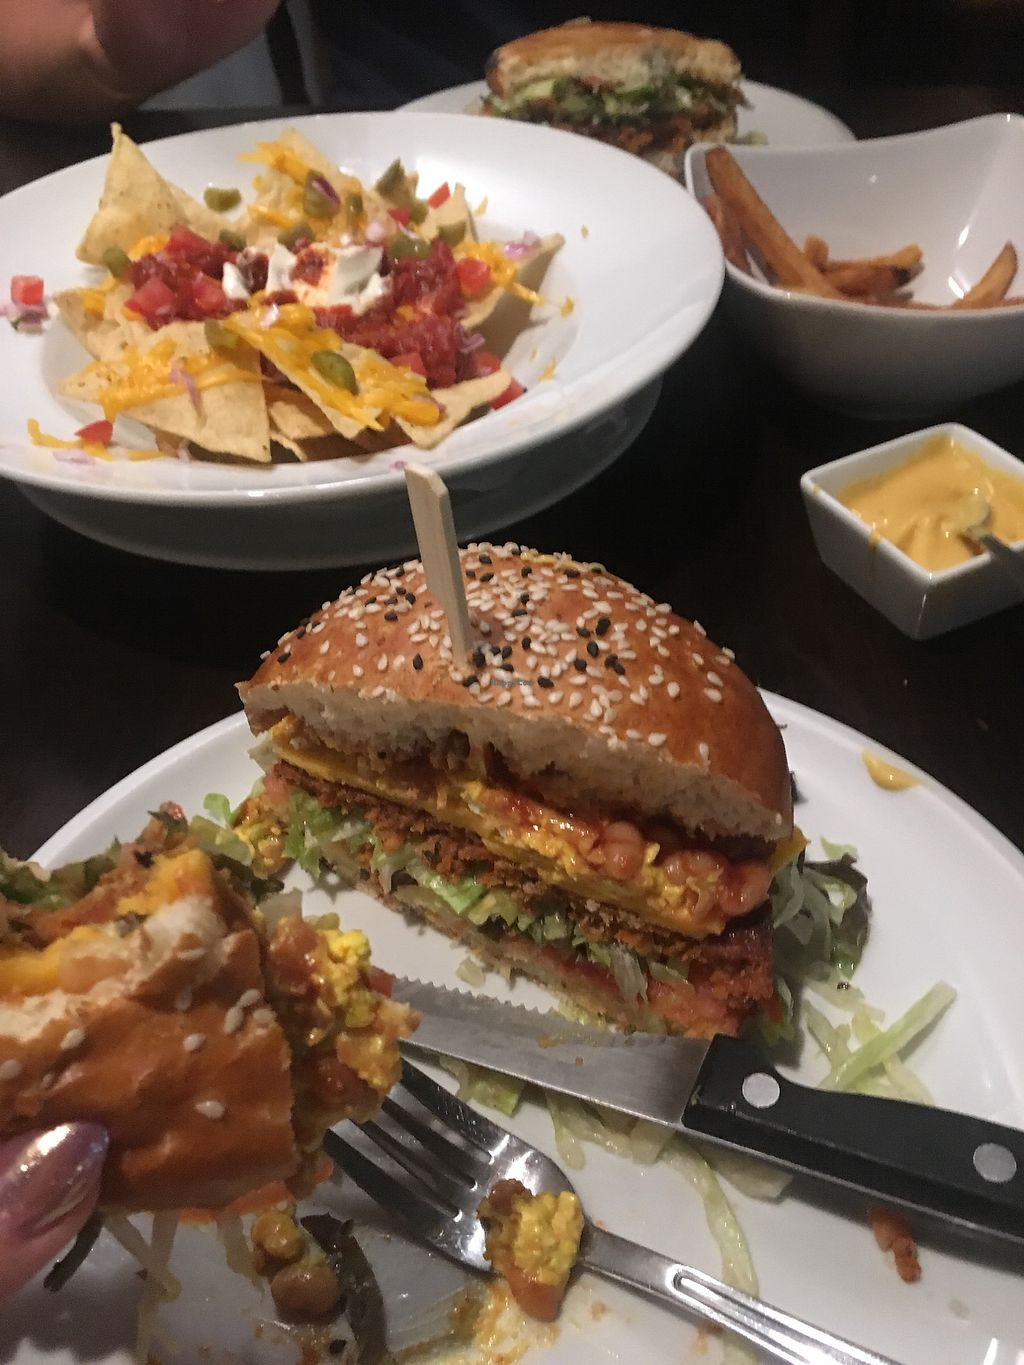 """Photo of Belzepub  by <a href=""""/members/profile/DomiGer"""">DomiGer</a> <br/>Beat vegan junk food  <br/> November 5, 2017  - <a href='/contact/abuse/image/53523/322084'>Report</a>"""